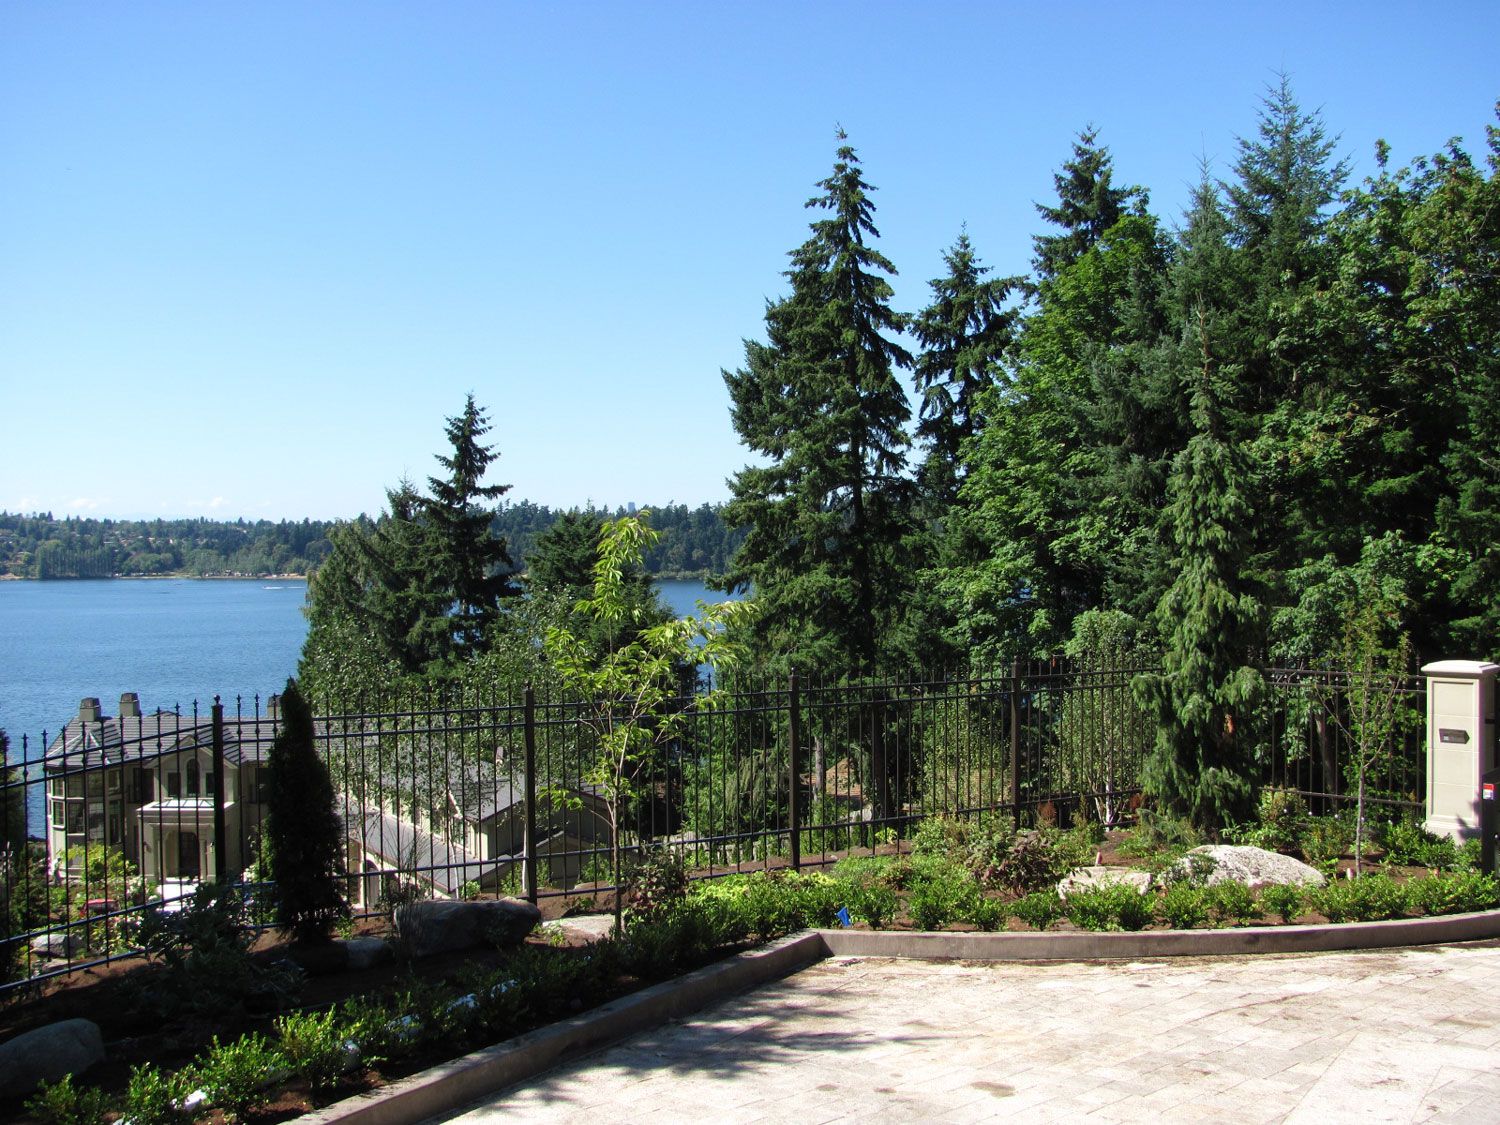 Automatic Gate and Fence - Extensive Fencing - Seattle, WA